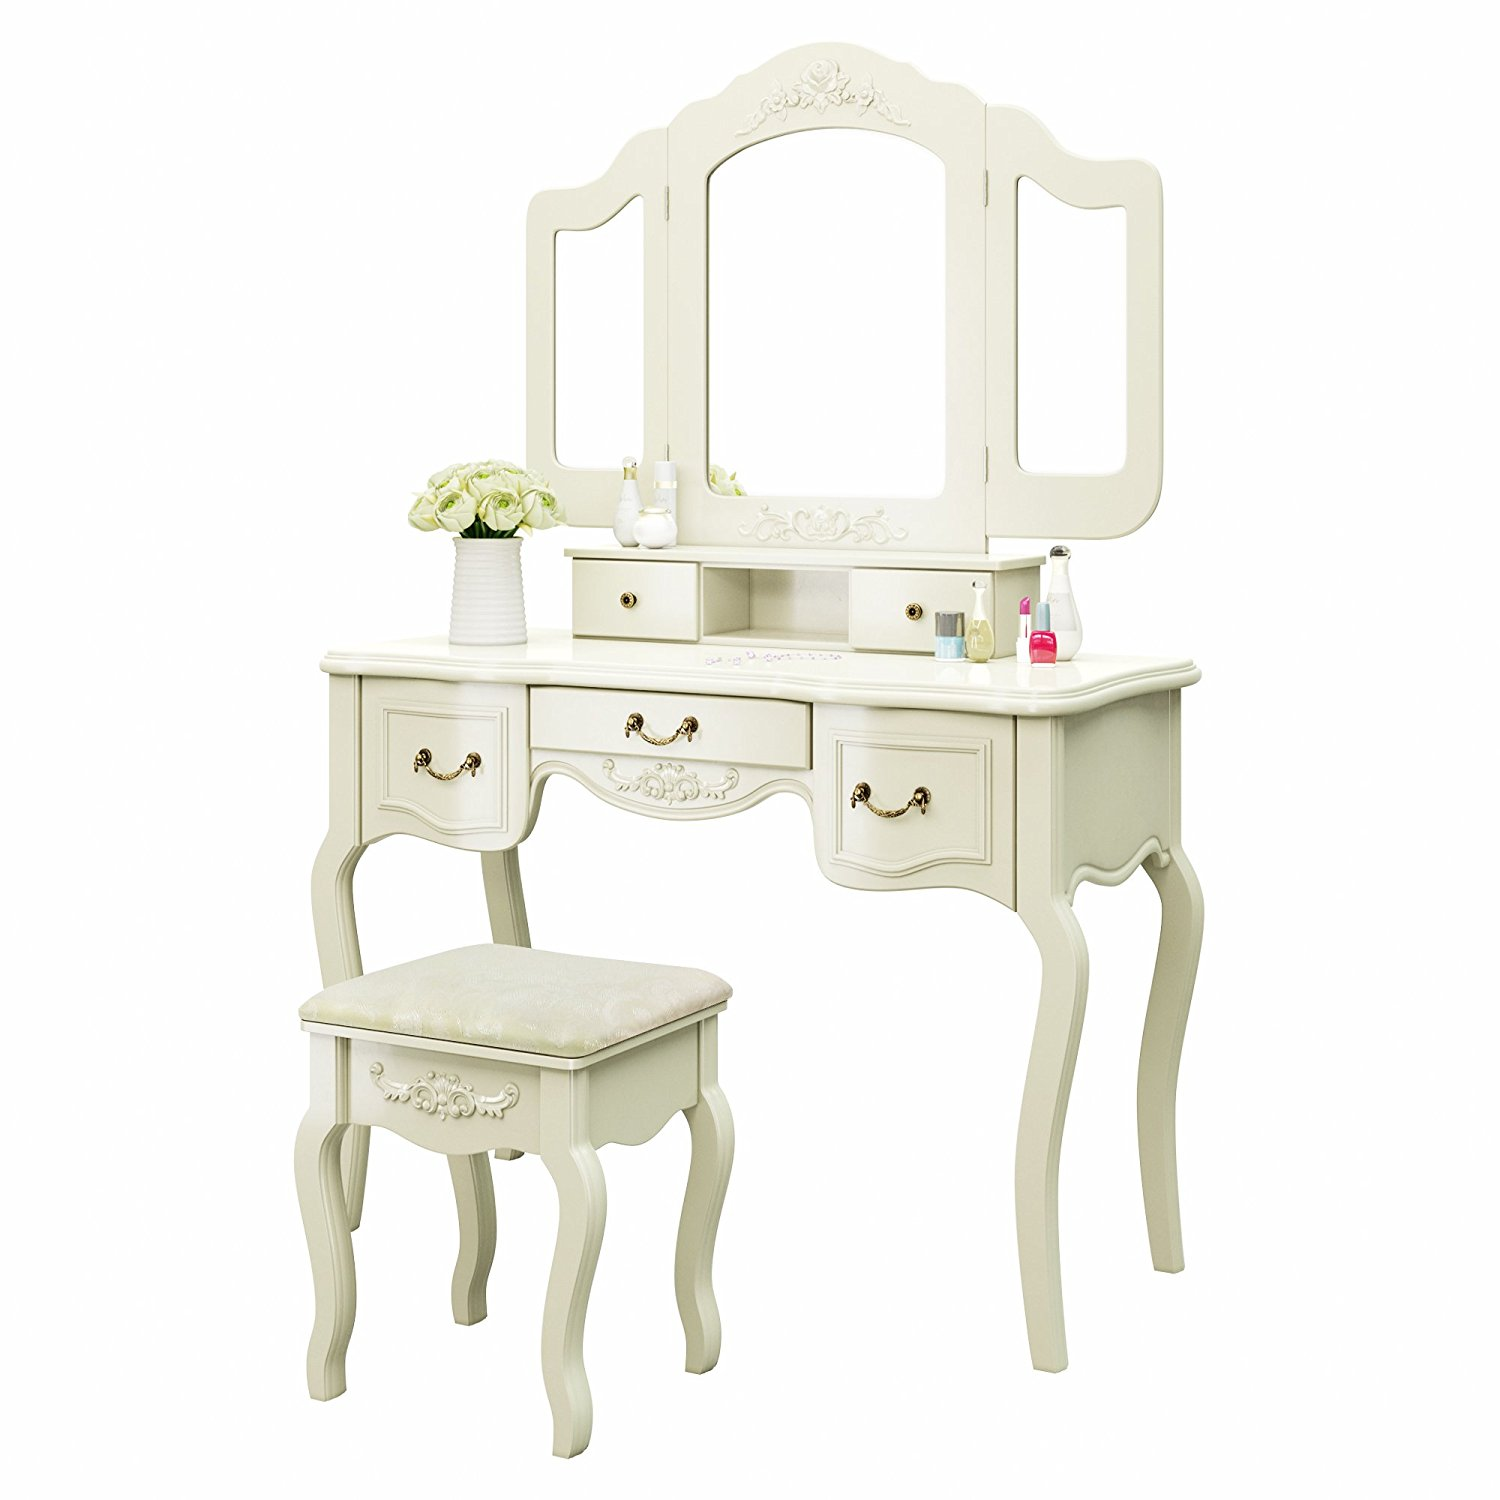 vanity makeup table set with stool tri folding mirror 5 drawers jewelry white ebay. Black Bedroom Furniture Sets. Home Design Ideas